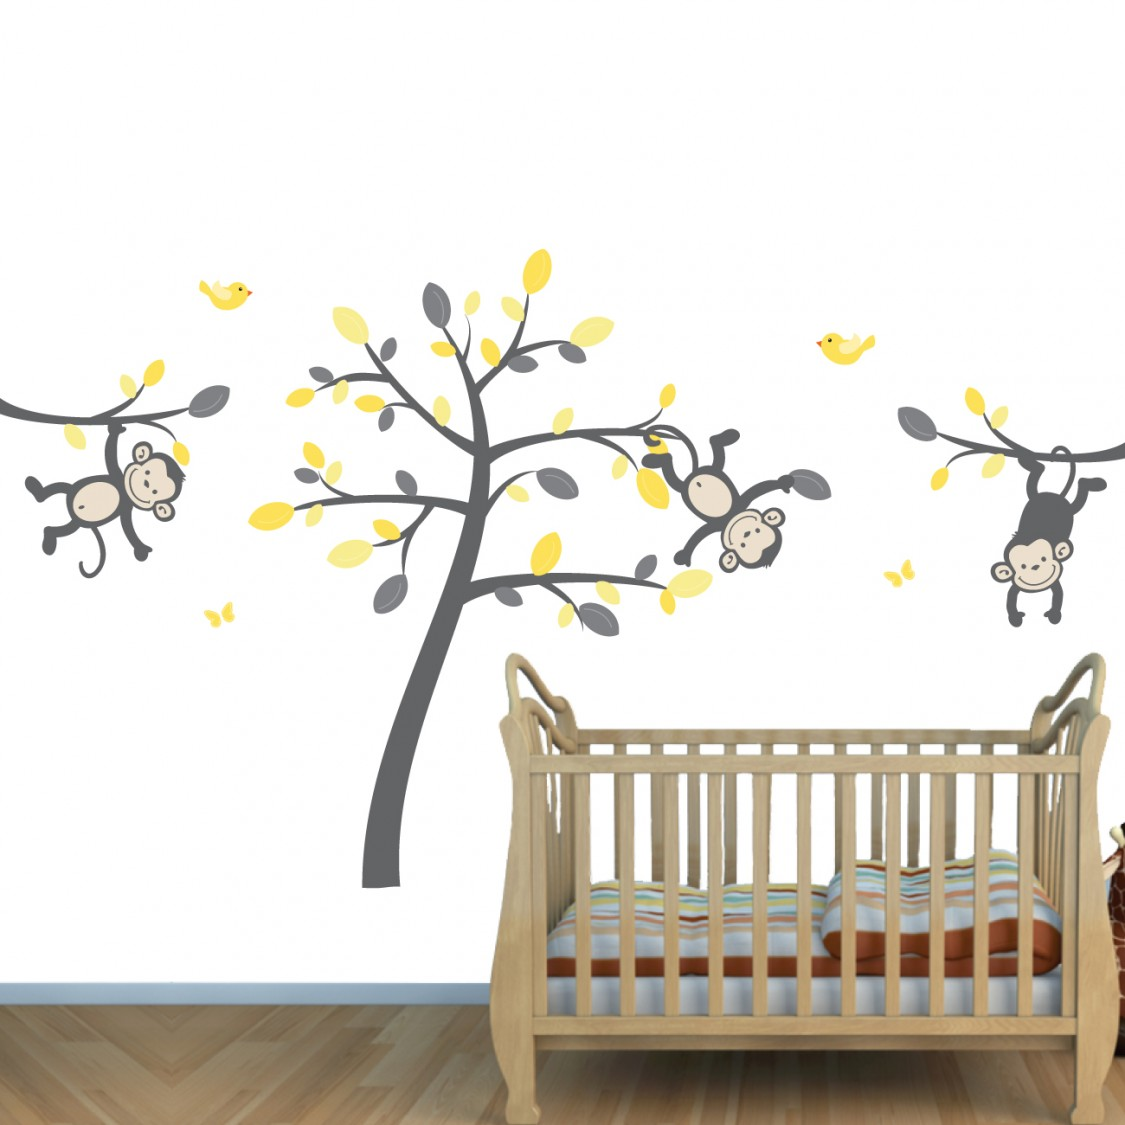 Gray Safari Murals With Monkey Wall Decals For Baby Room - Yellow wall decals